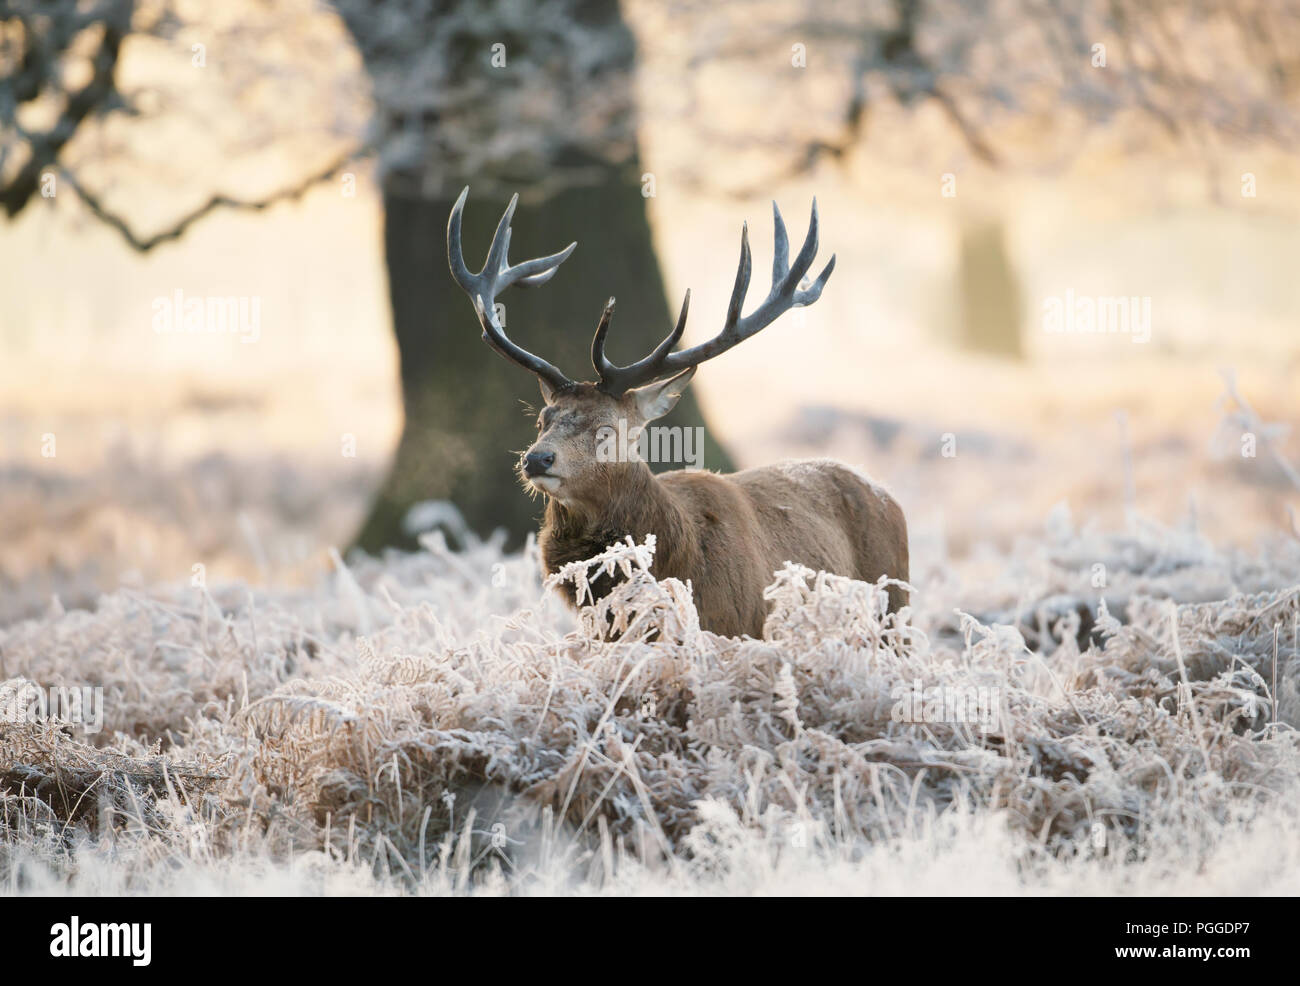 Red deer stag standing in fern on a frosty winter morning, UK. - Stock Image